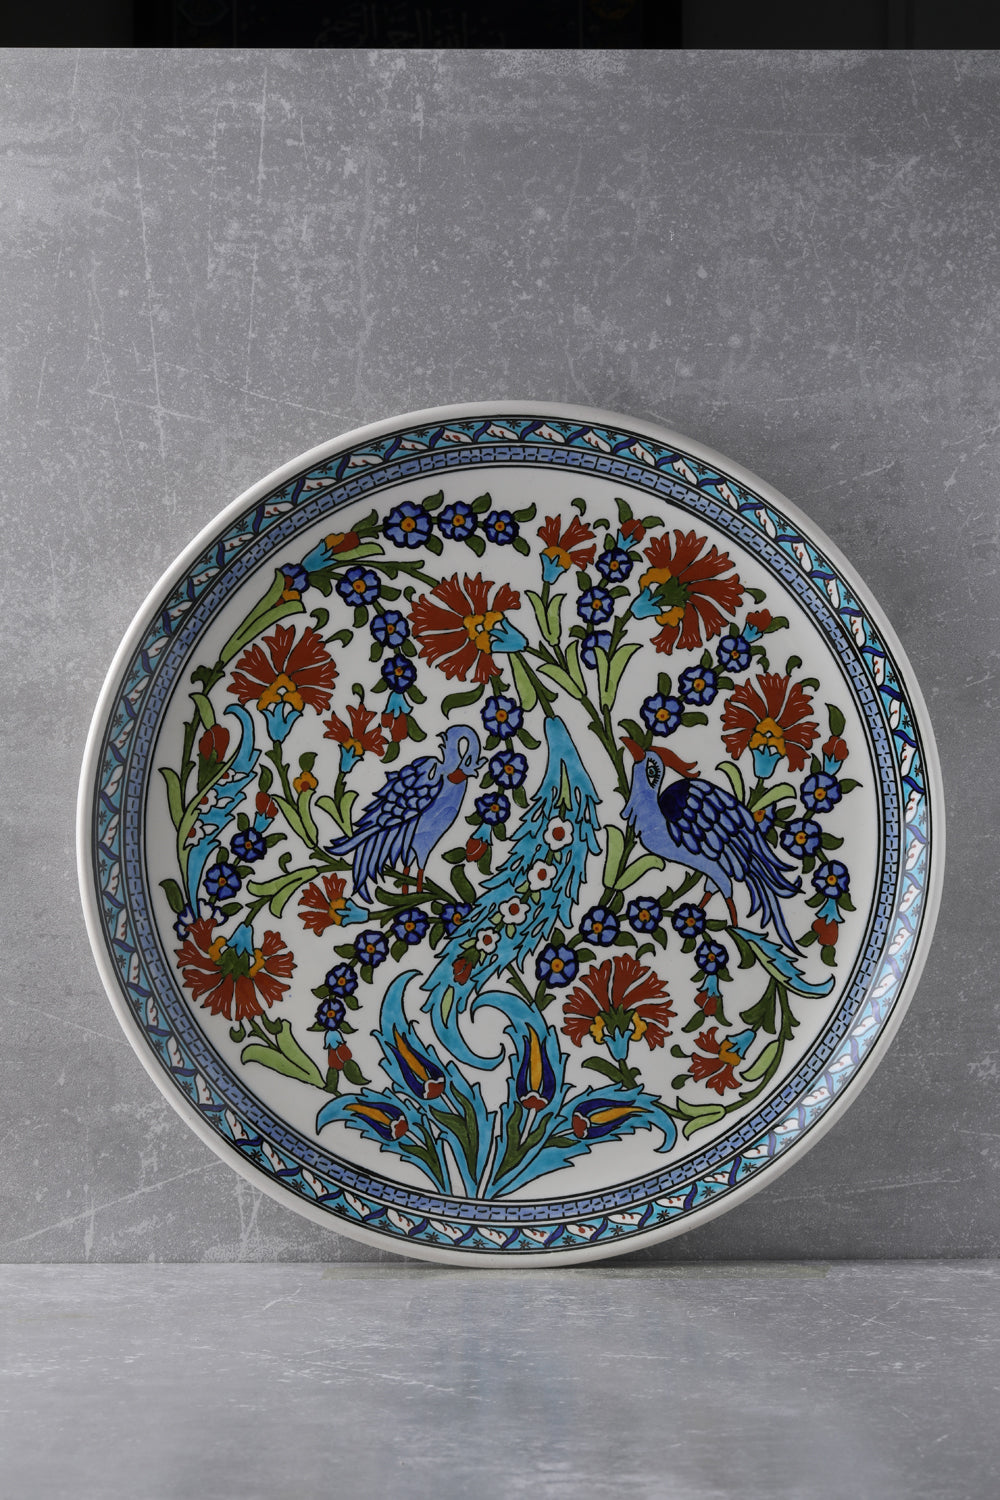 EXCLUSIVE HANDCRAFTED ELHAMRA PLATE